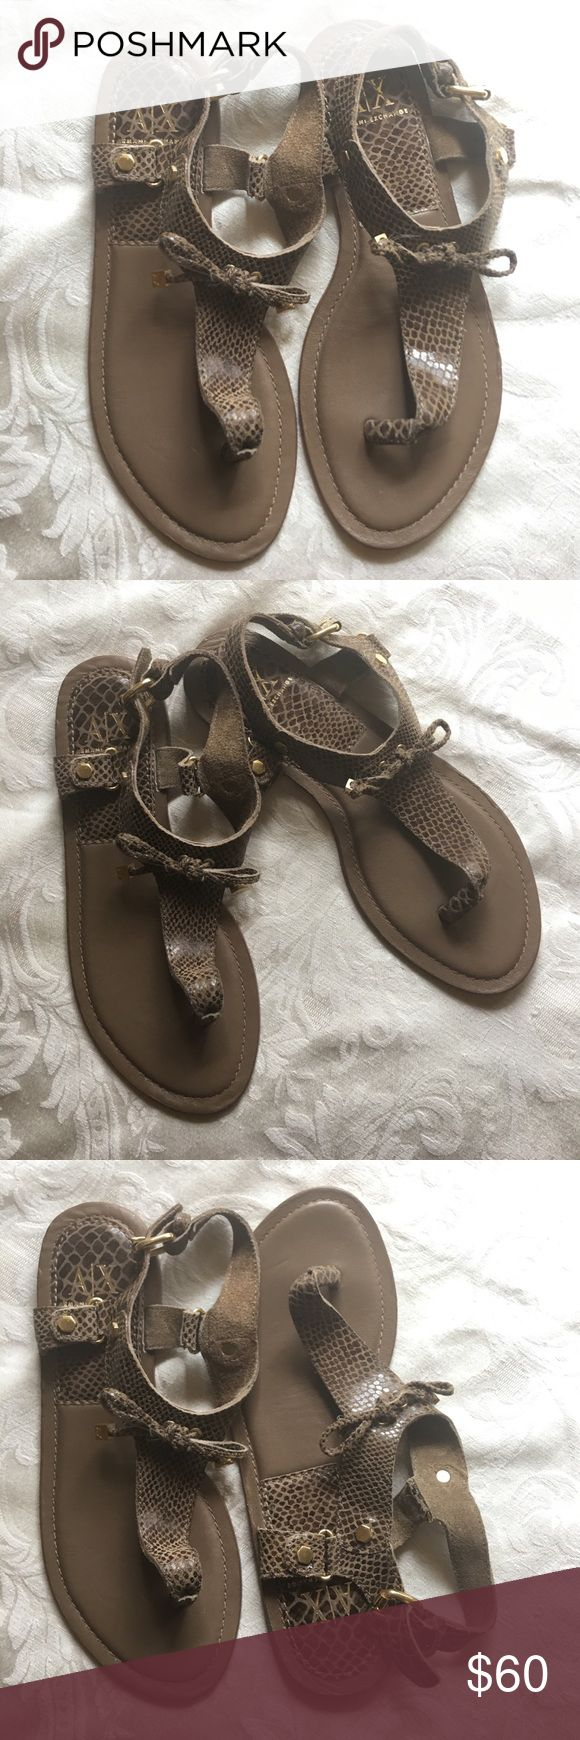 A/X Armani Exchange Brown Sandals Shoes 9M Size 9M Brown Animal Print Thong Leather Sandals Shoes. Pre-owned in great condition. Armani Exchange Shoes Sandals